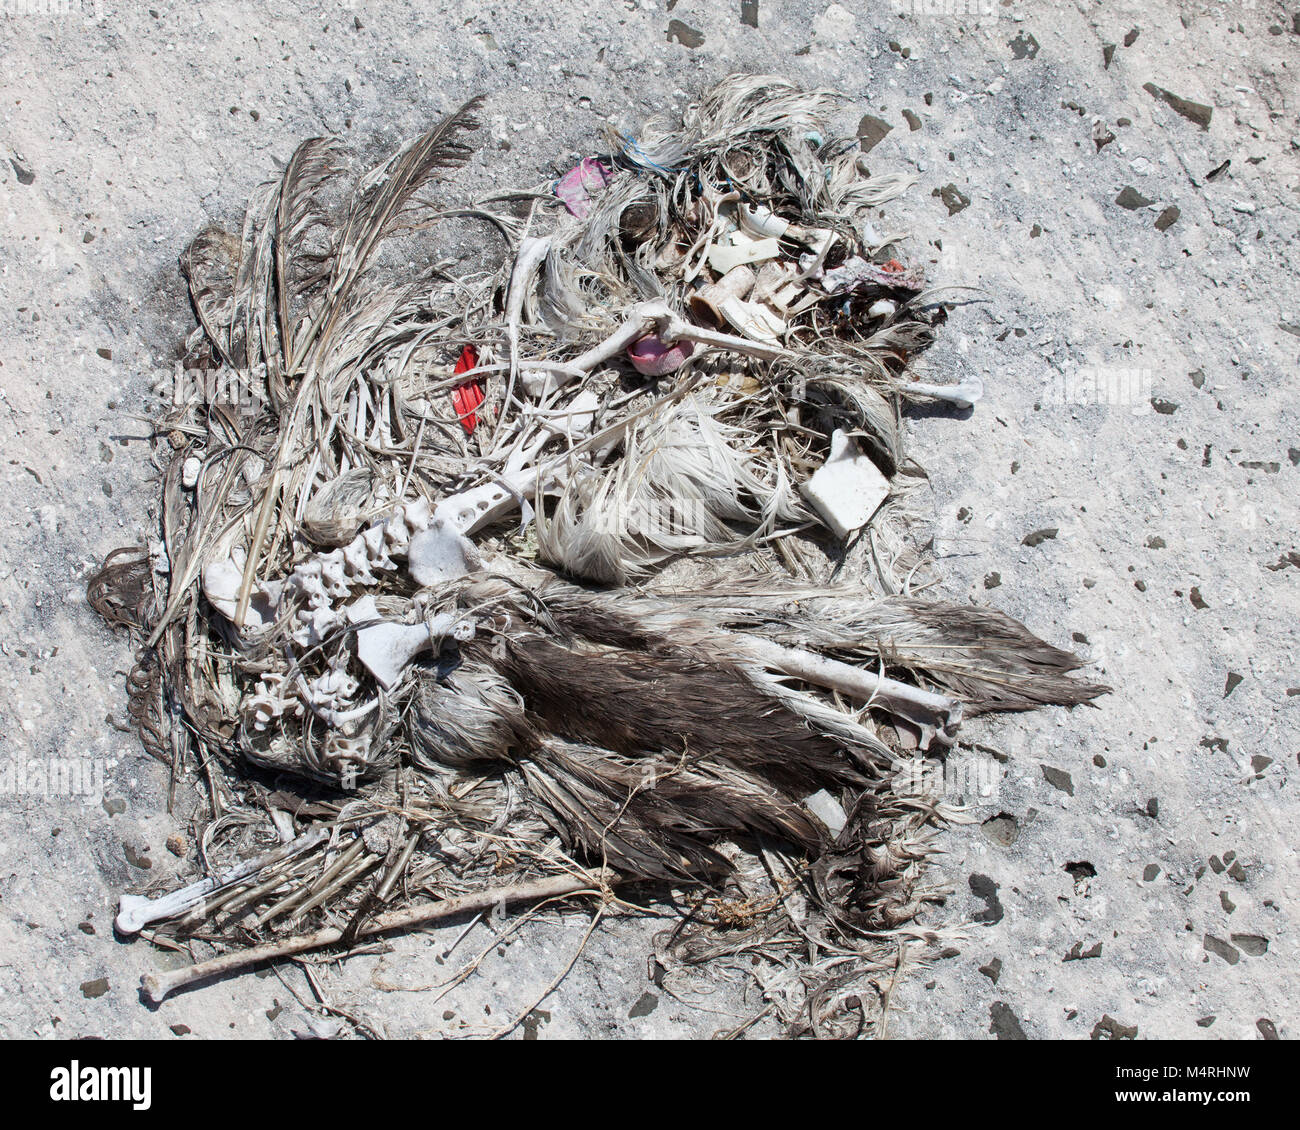 Remains of dead Laysan Albatross with a bottle cap and other plastic marine debris which were ingested by the bird - Stock Image